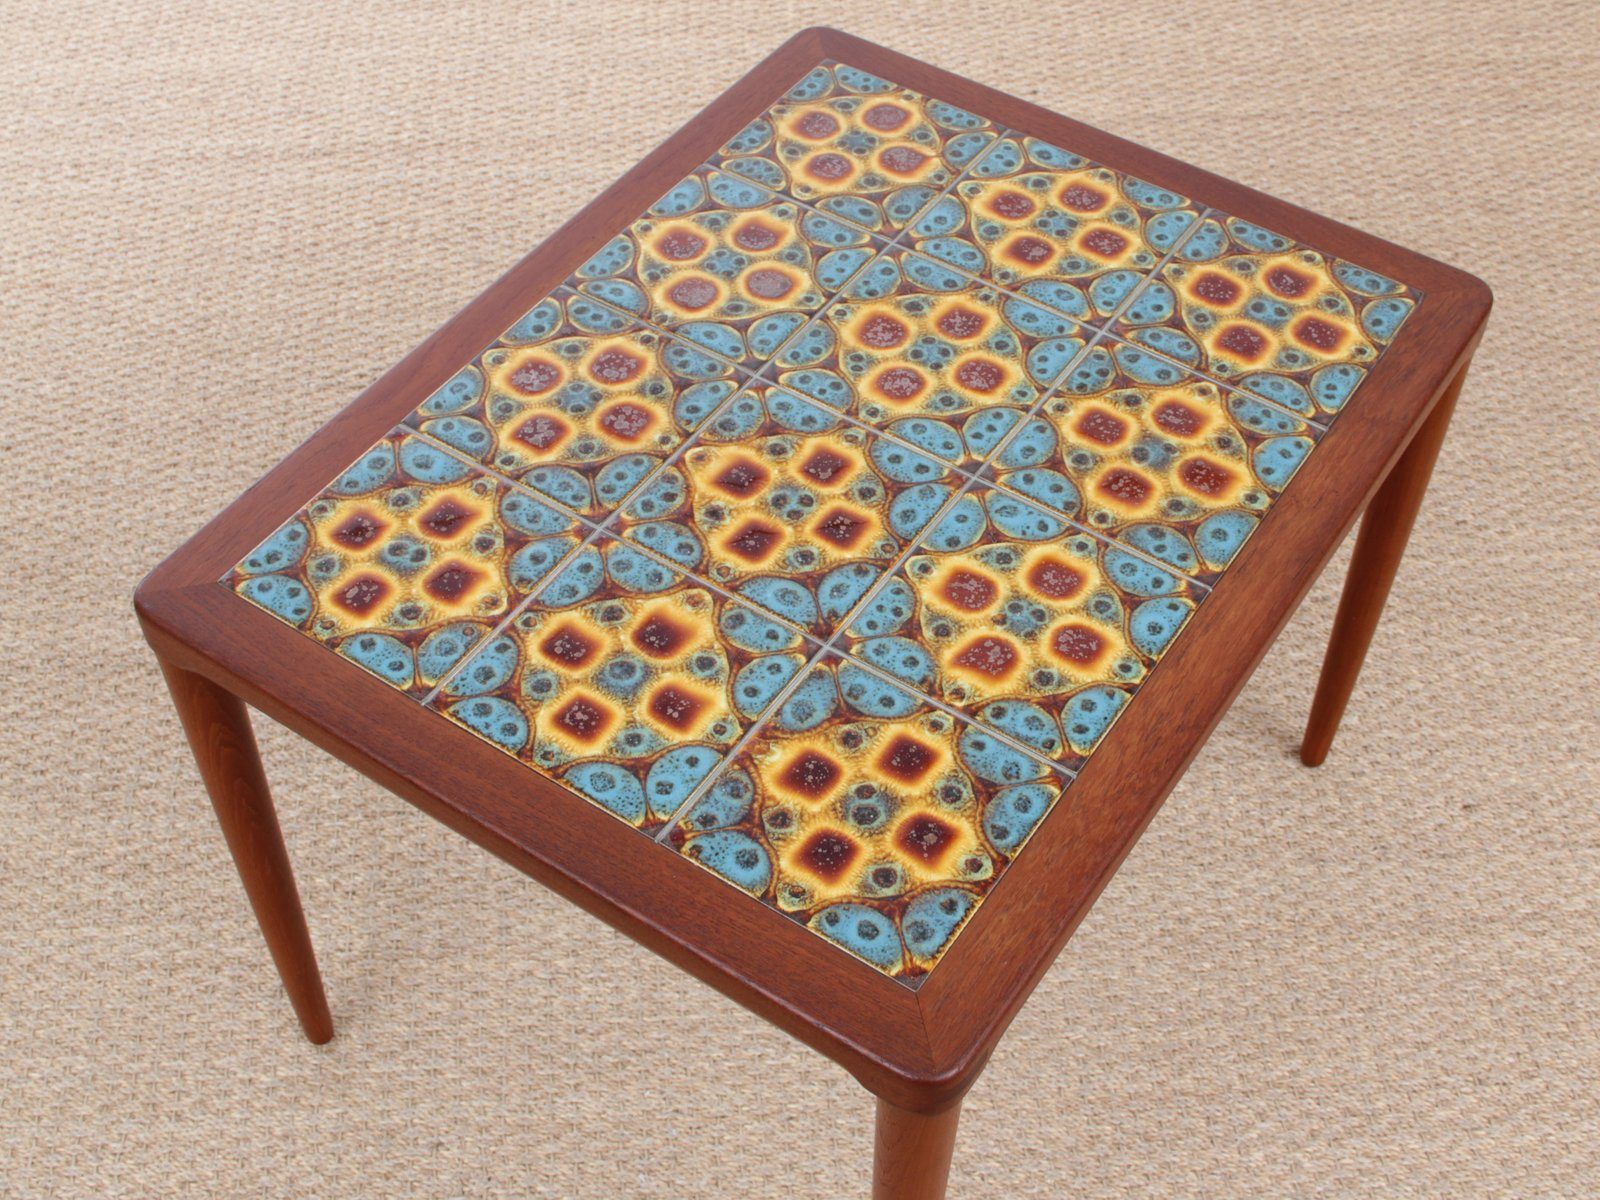 Mid Century Modern Teak Coffee Table with Ceramic Tiles by H W